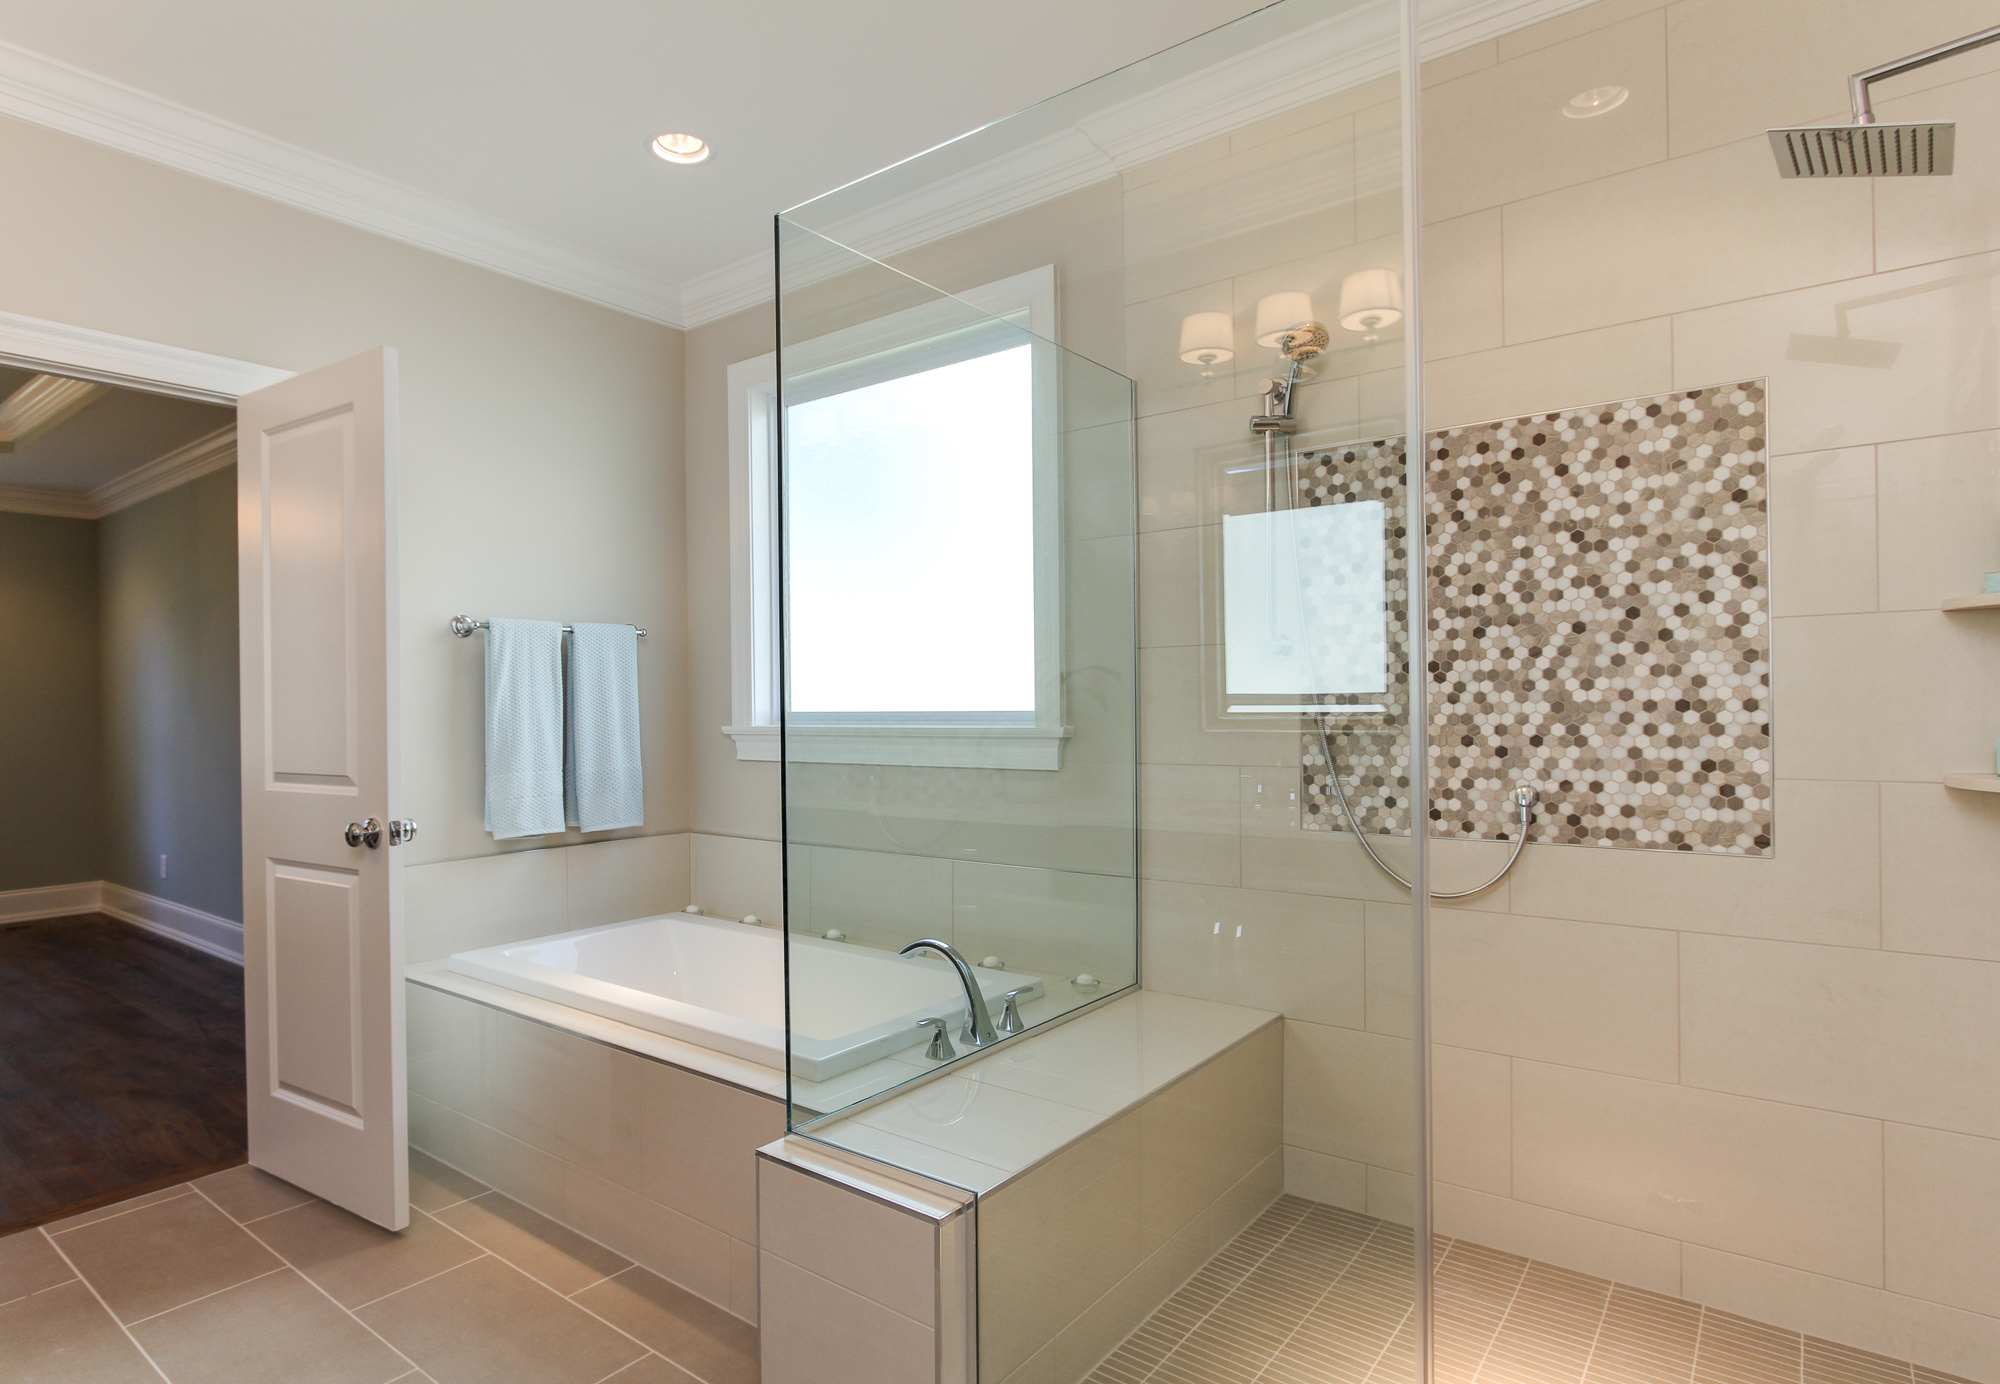 bathrooms jacobs building company master bathroom with jacuzzi tub and large walk in shower